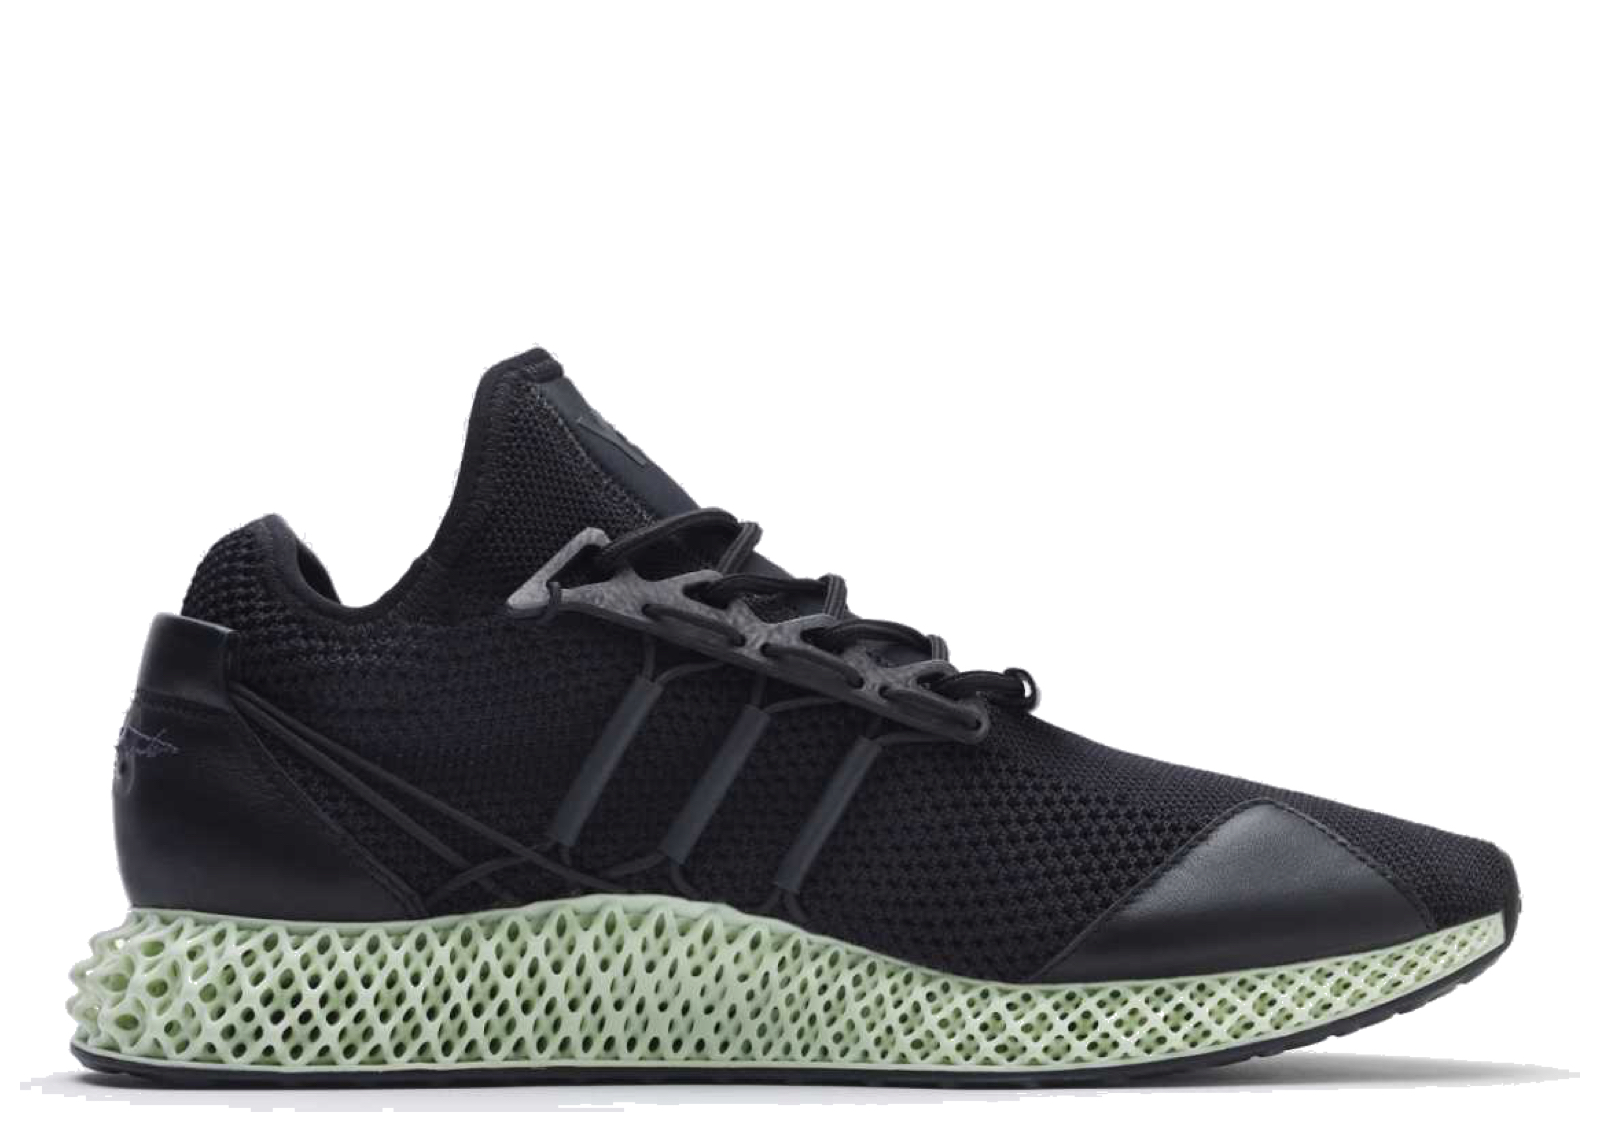 the best attitude 652d1 a8bd9 adidas Y-3 Runner 4D II Black - 0